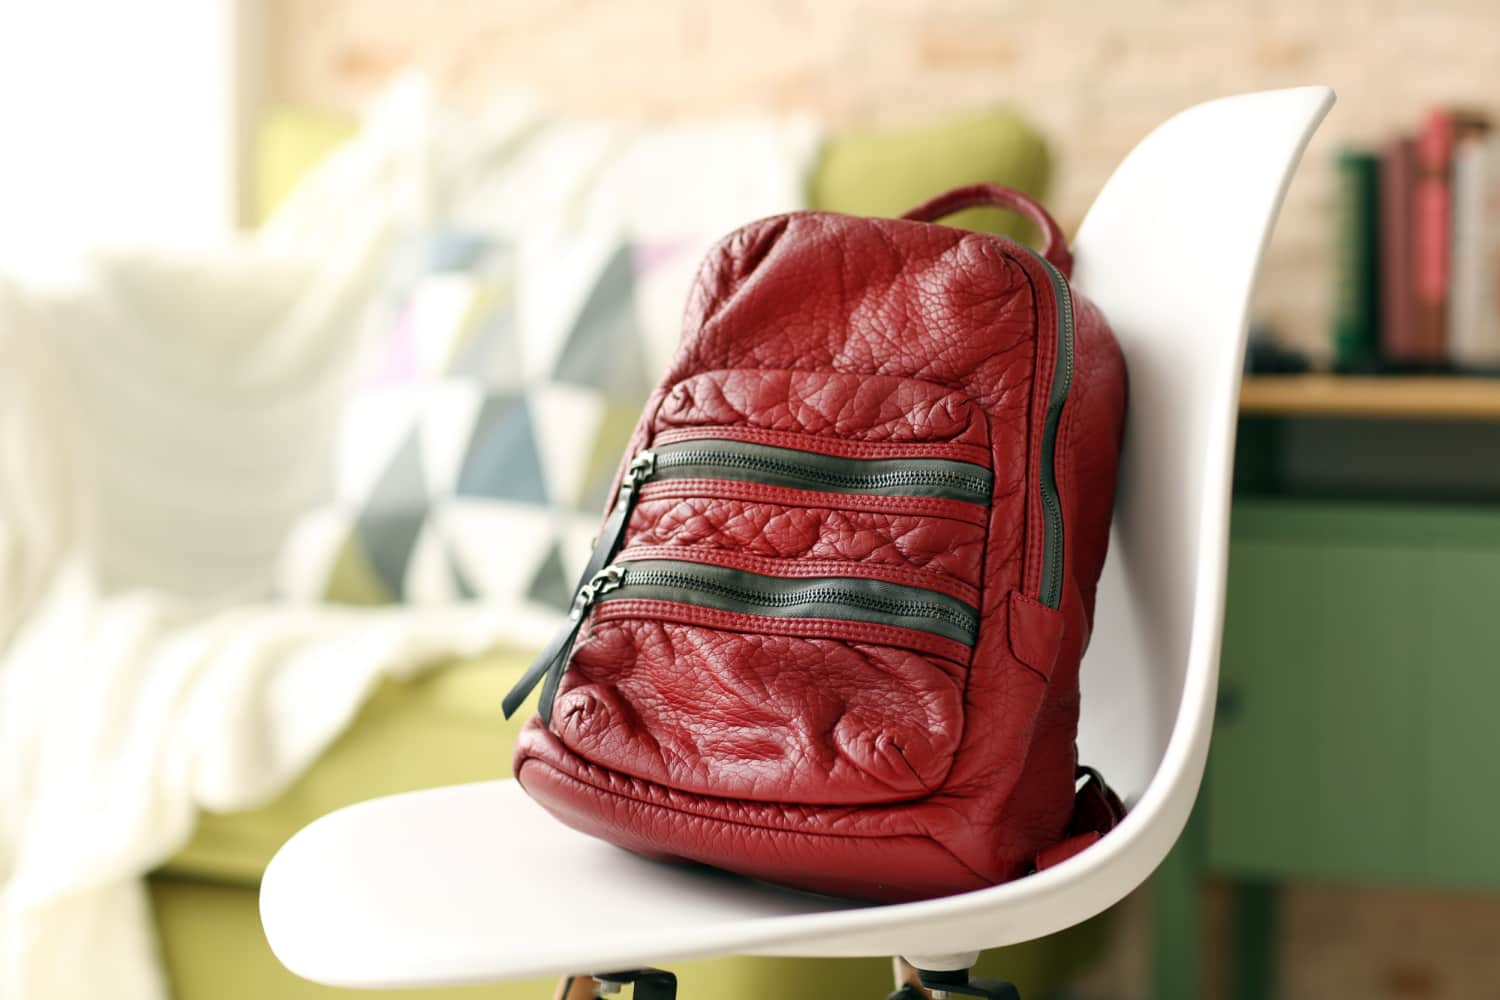 The Ultimate in Emergency Prep: How to Put Your Life in a Backpack